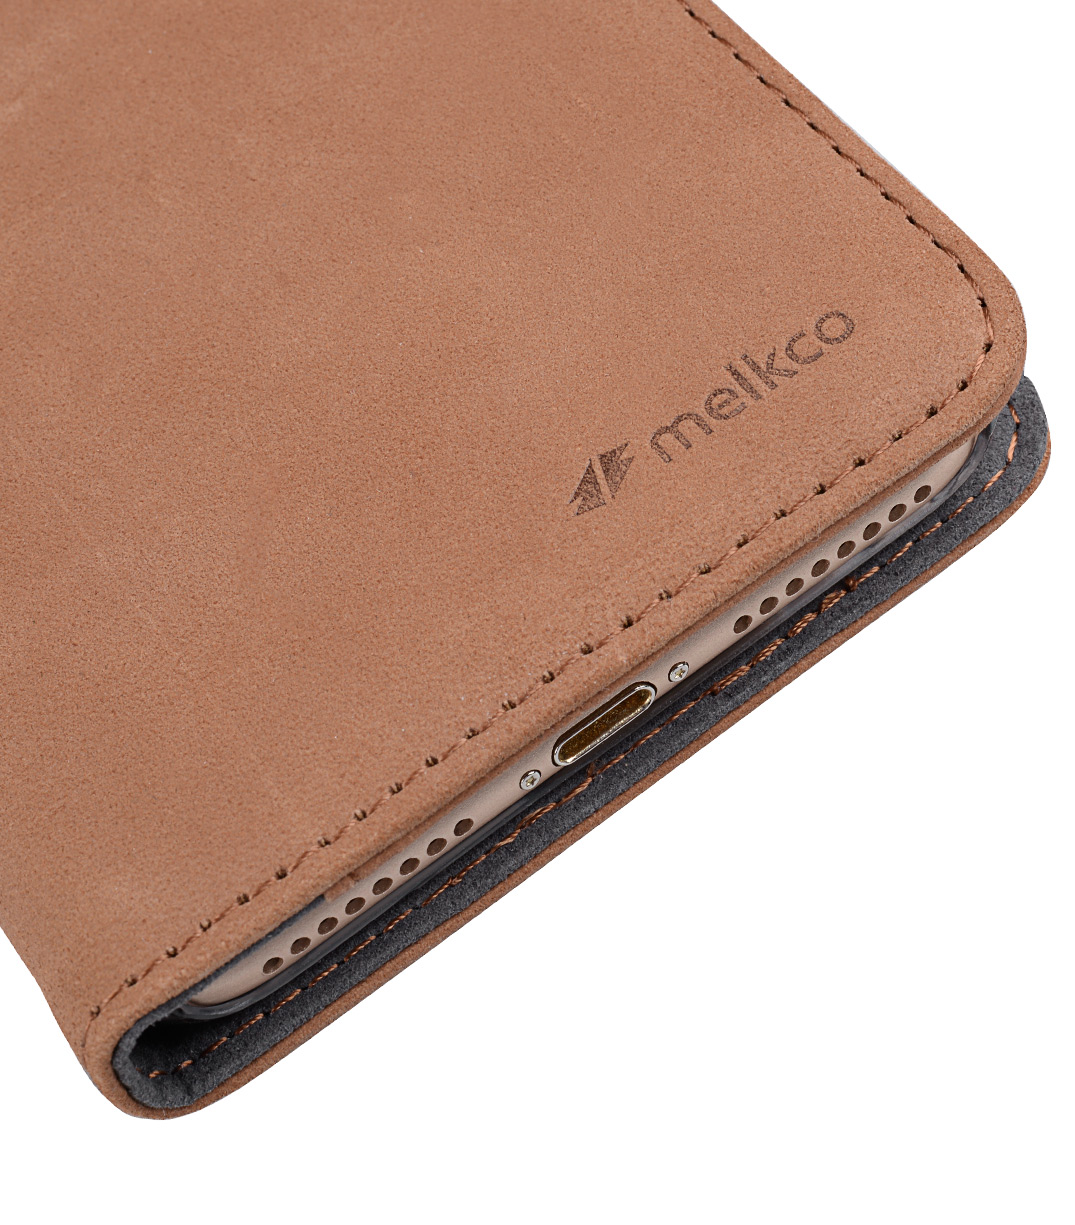 """Melkco Premium Leather Case for Apple iPhone 7 / 8 Plus (5.5"""") - Wallet Book ID Slot Type(Classic Vintage Brown)"""